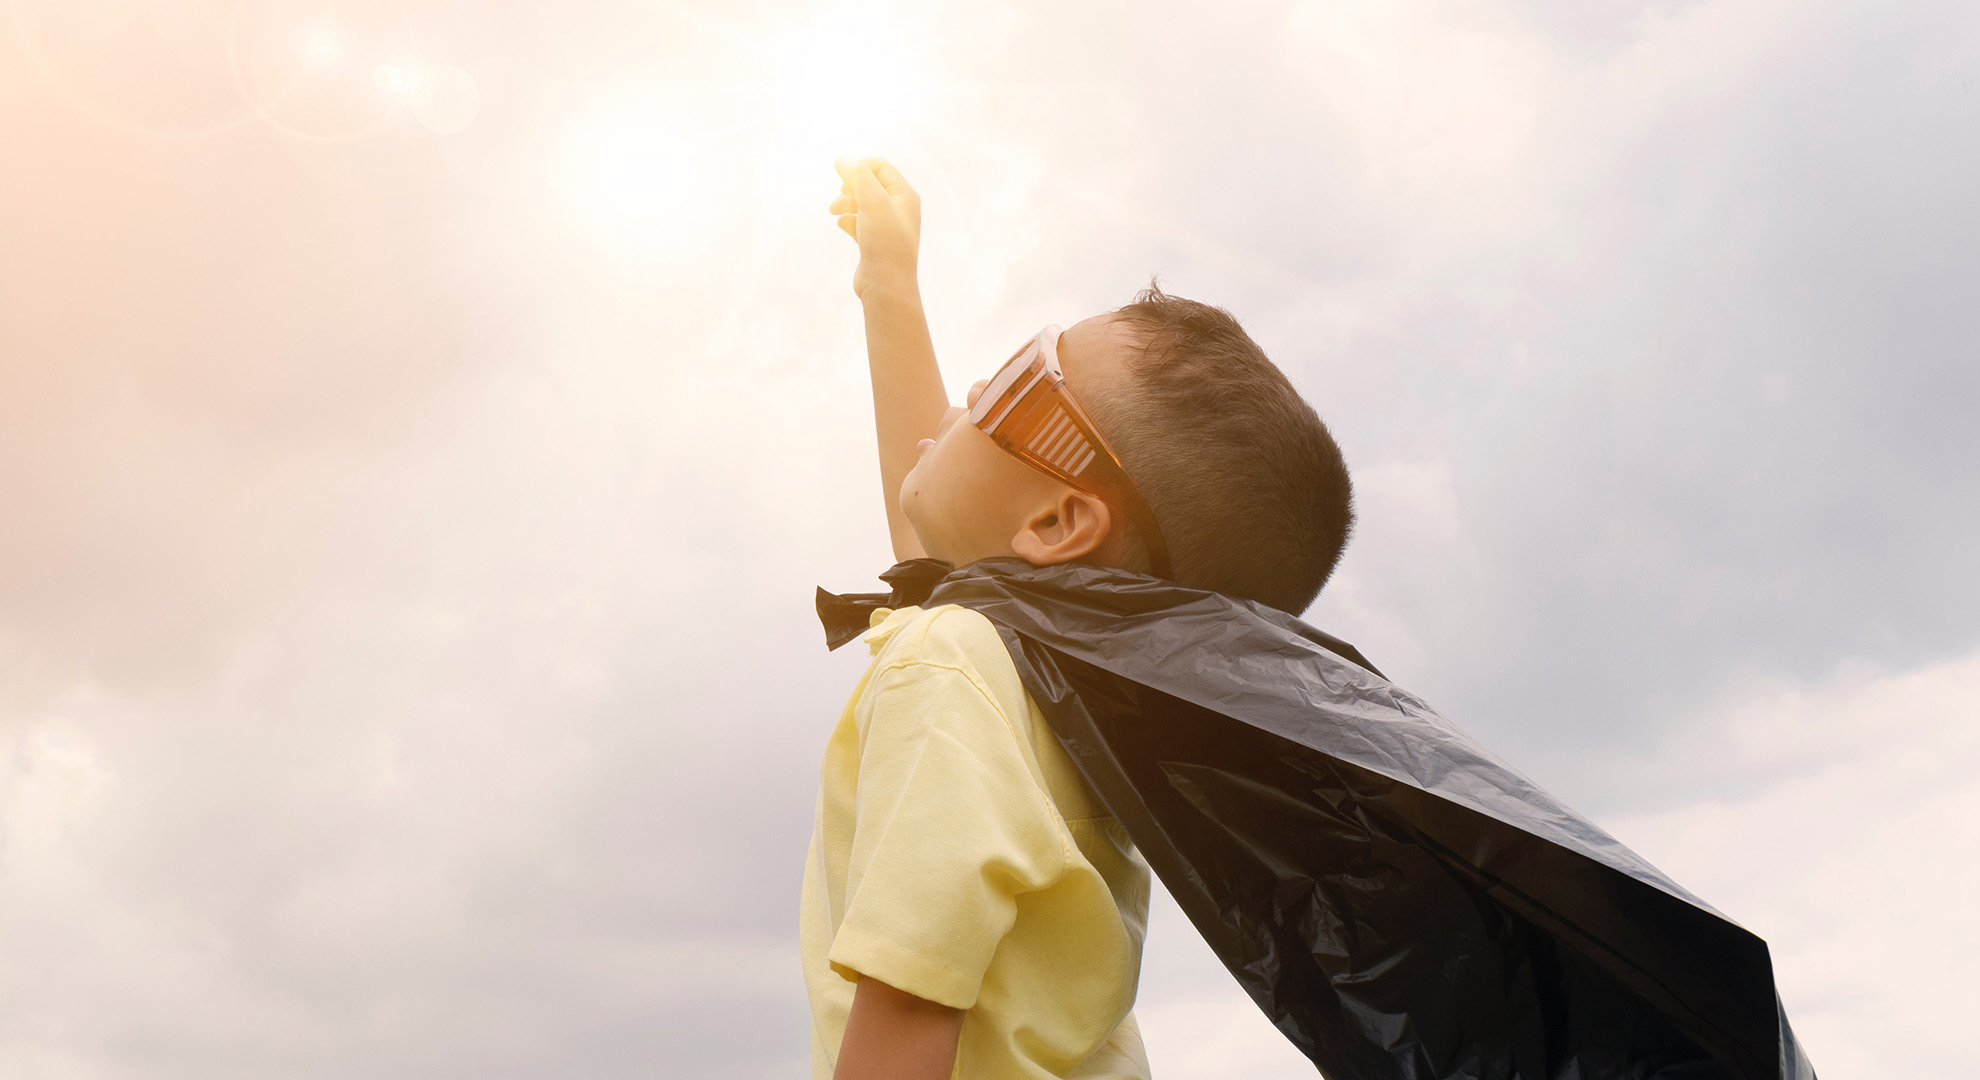 At school, little heroes believe they can effect change in the world